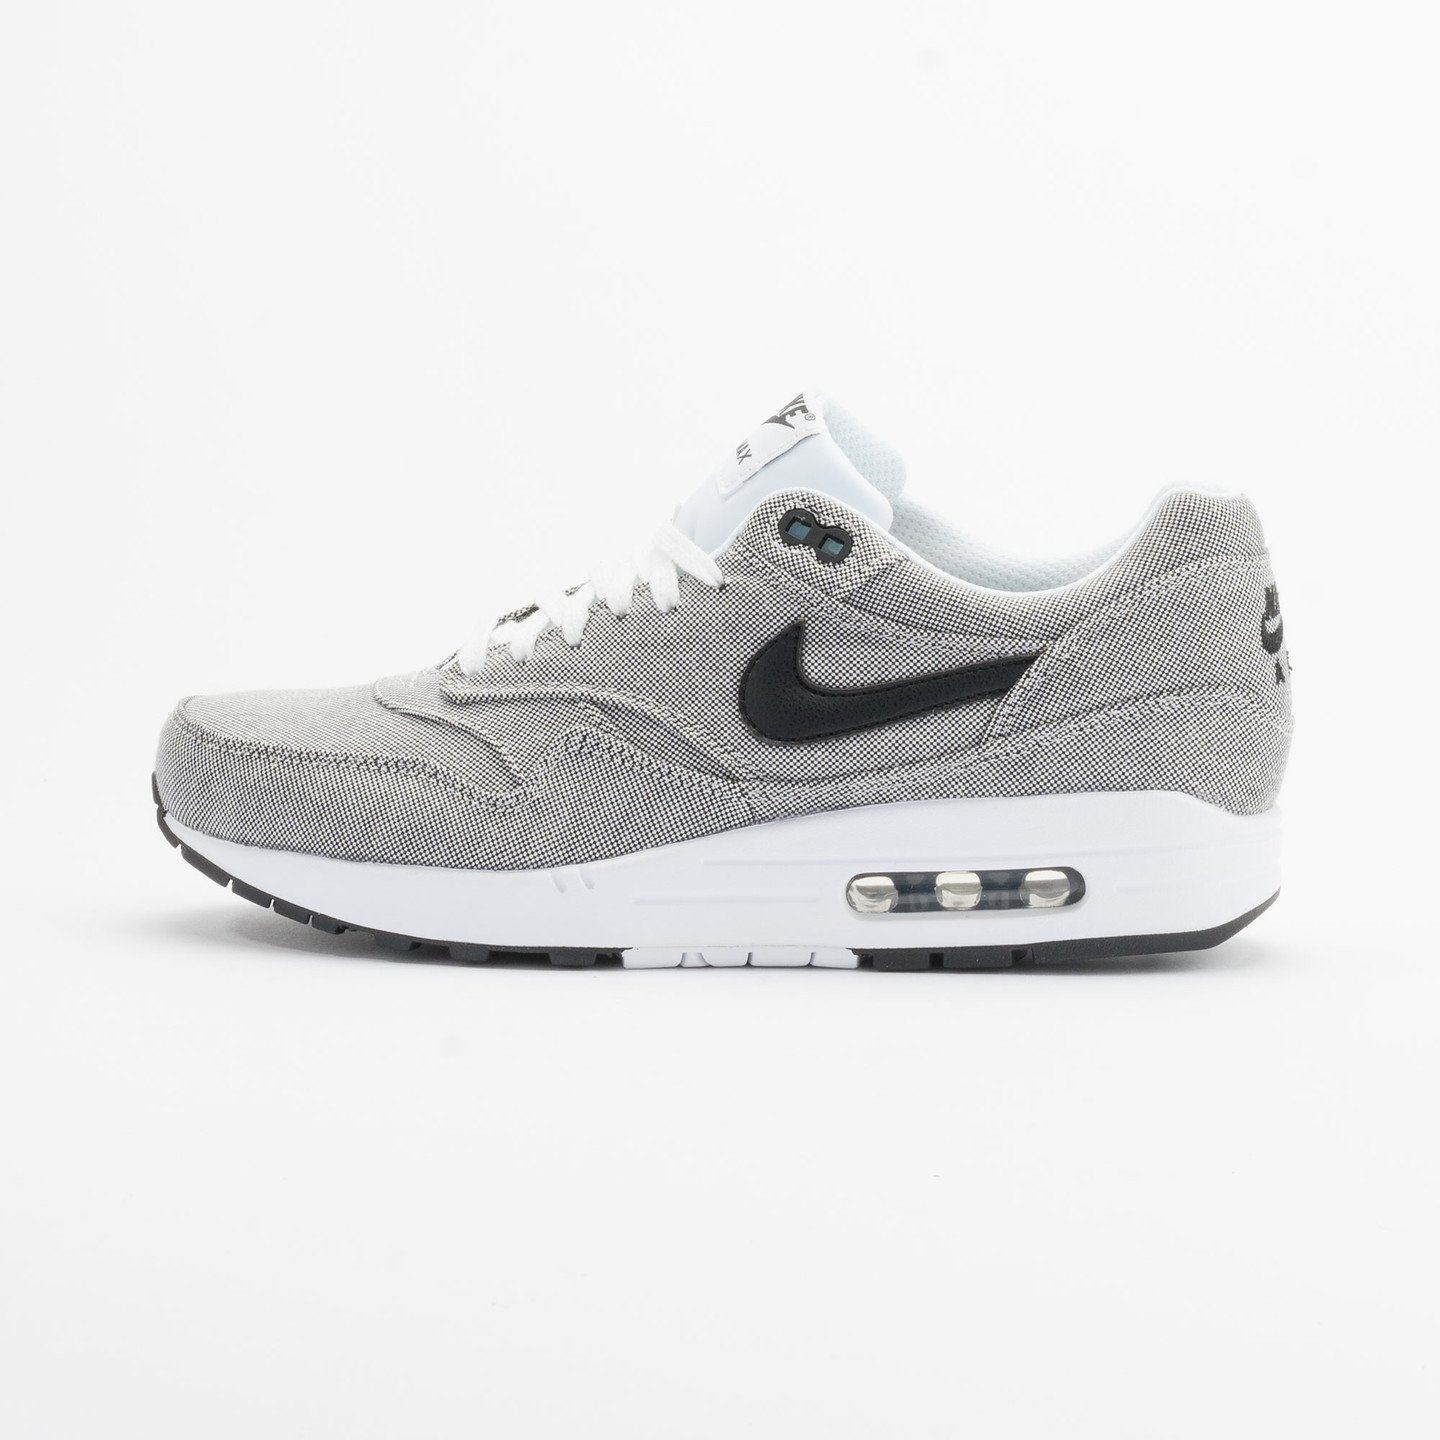 Nike Air Max 1 Prm Picknick Pack Black/White 512033-103-42